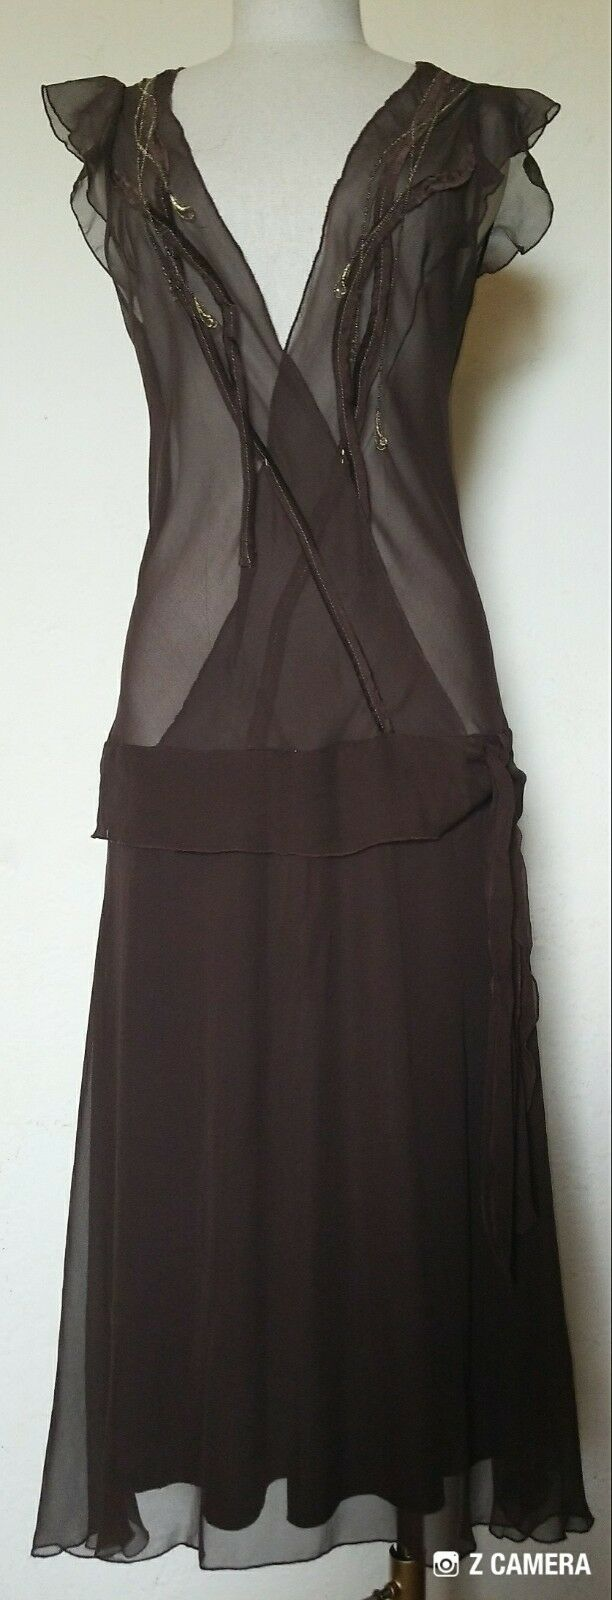 16dbabd3356 Handmade Drop Waist Top Dress Size 10 12 Shear Brown neudpl10946 ...